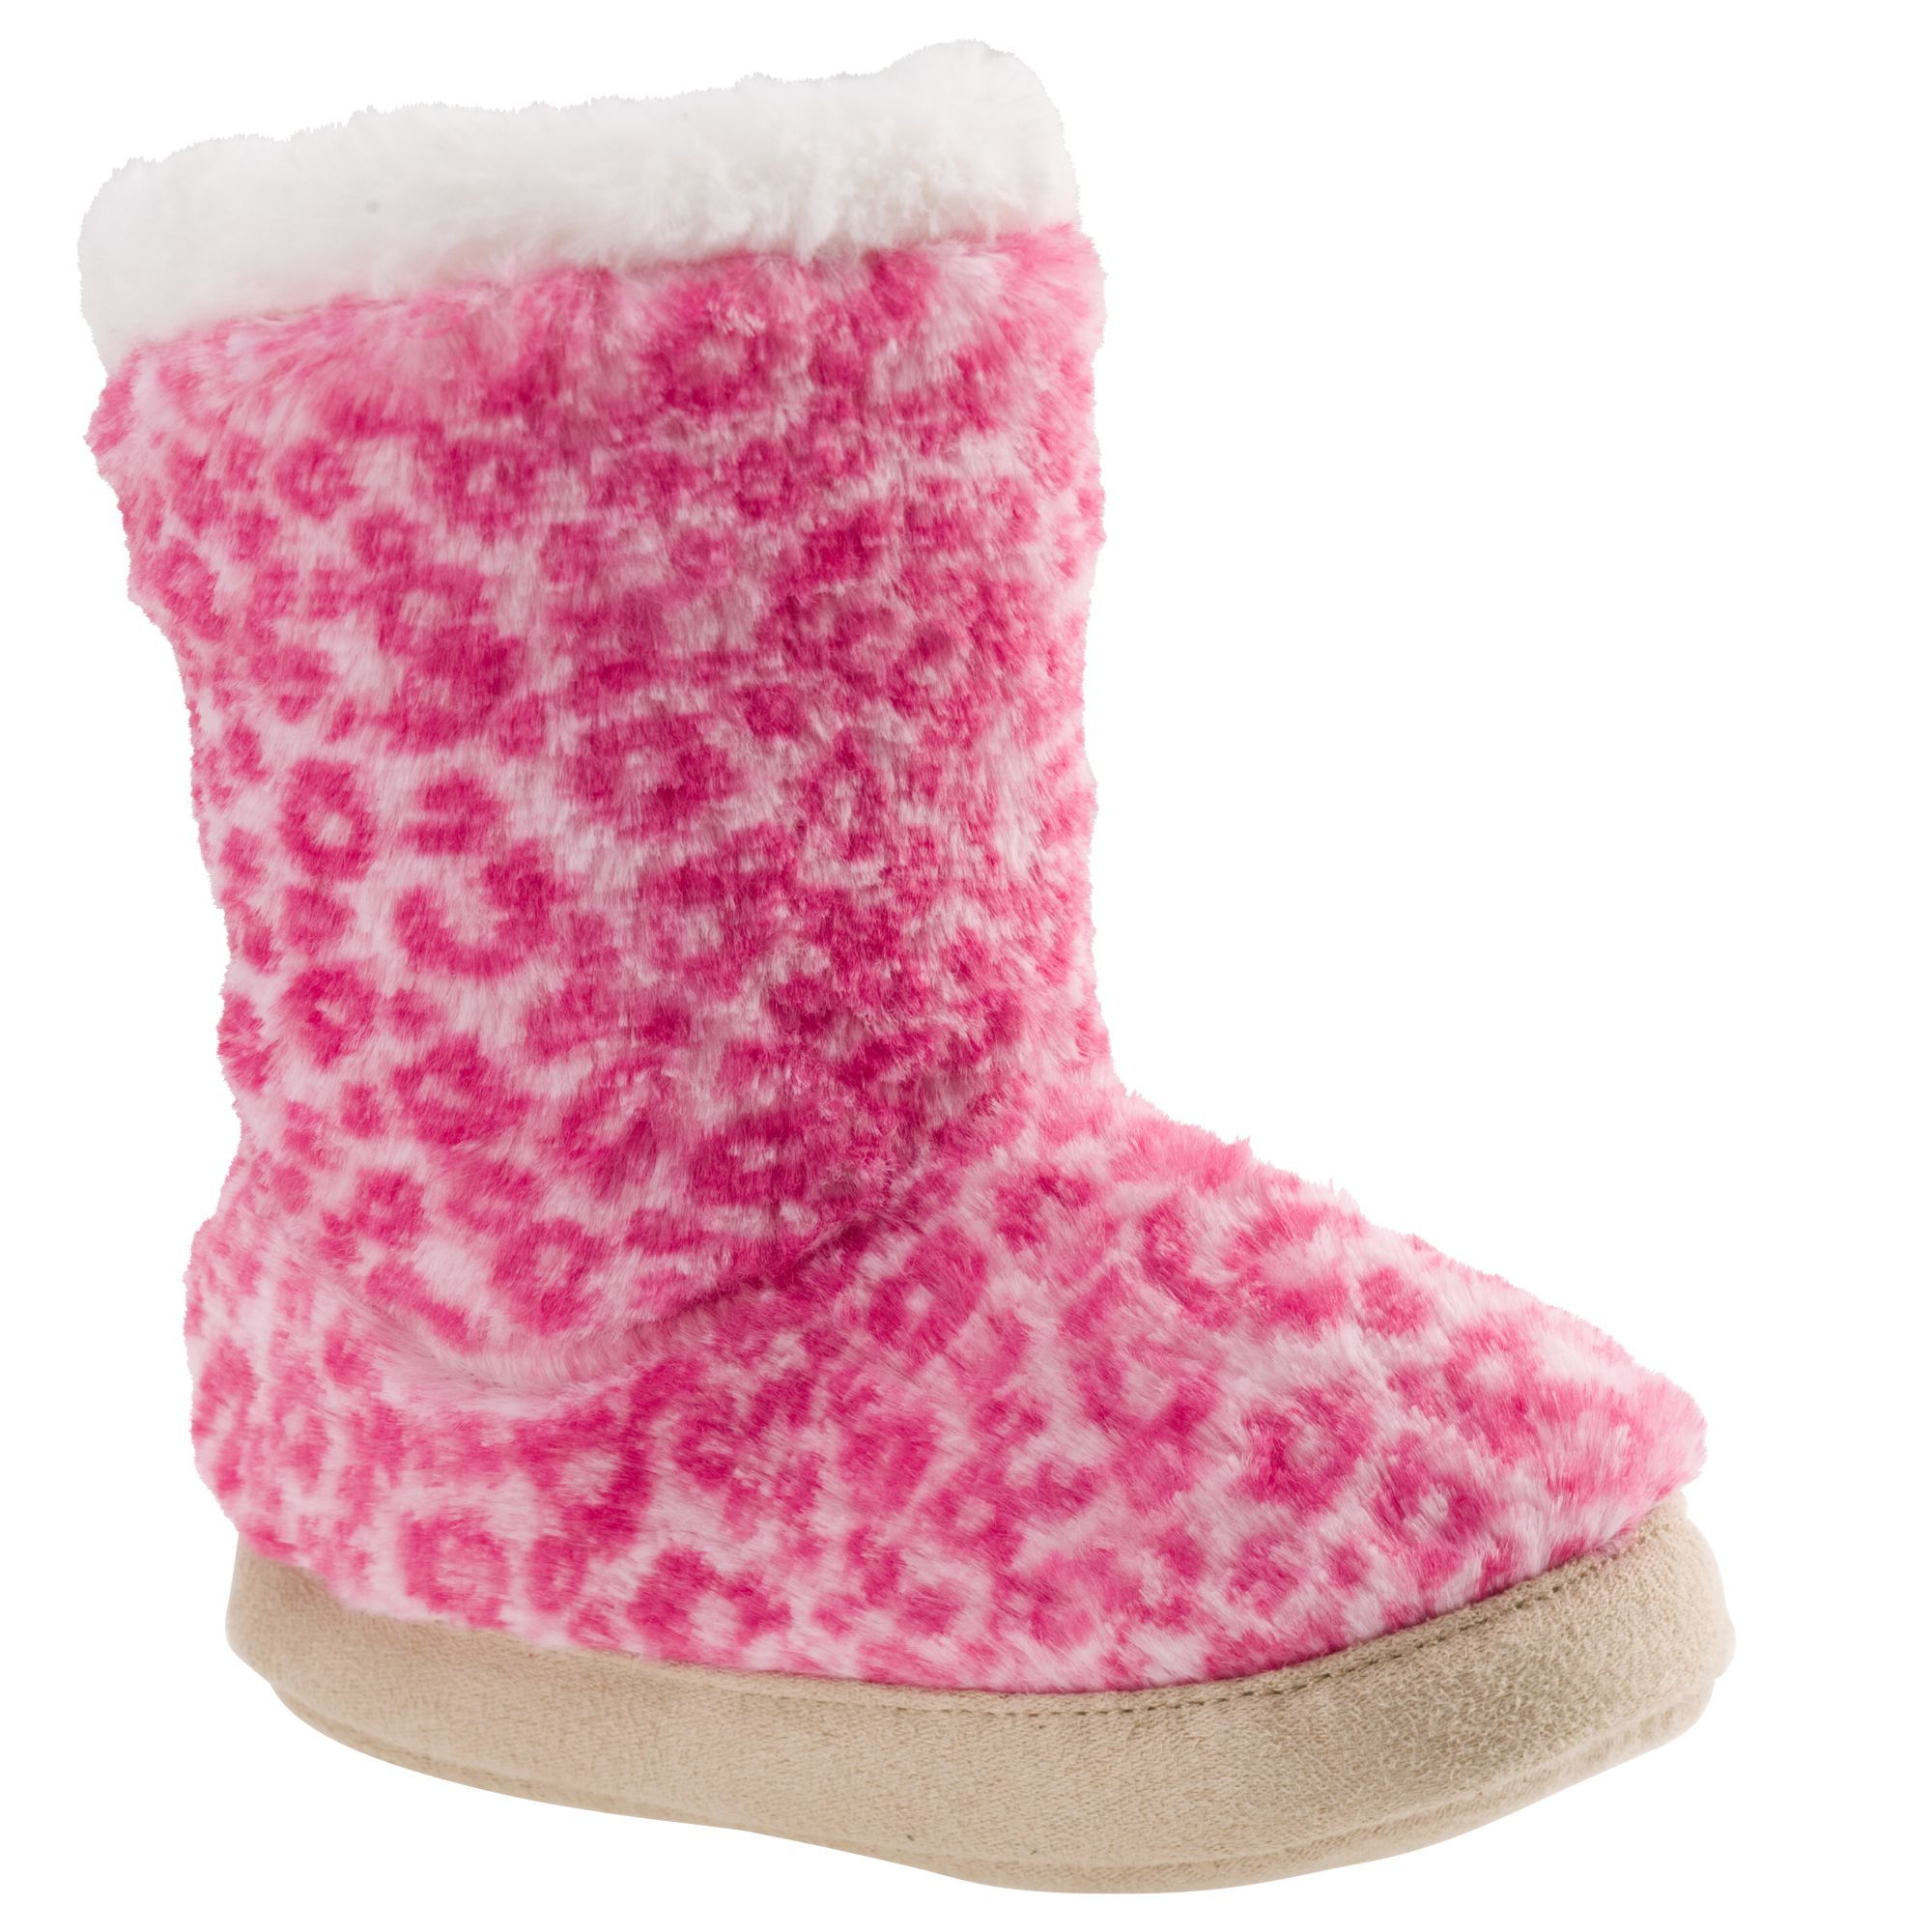 afc682c9e29 Fuzzy cheetah slipper boots from Carter's | litlle fuzzy boots ...